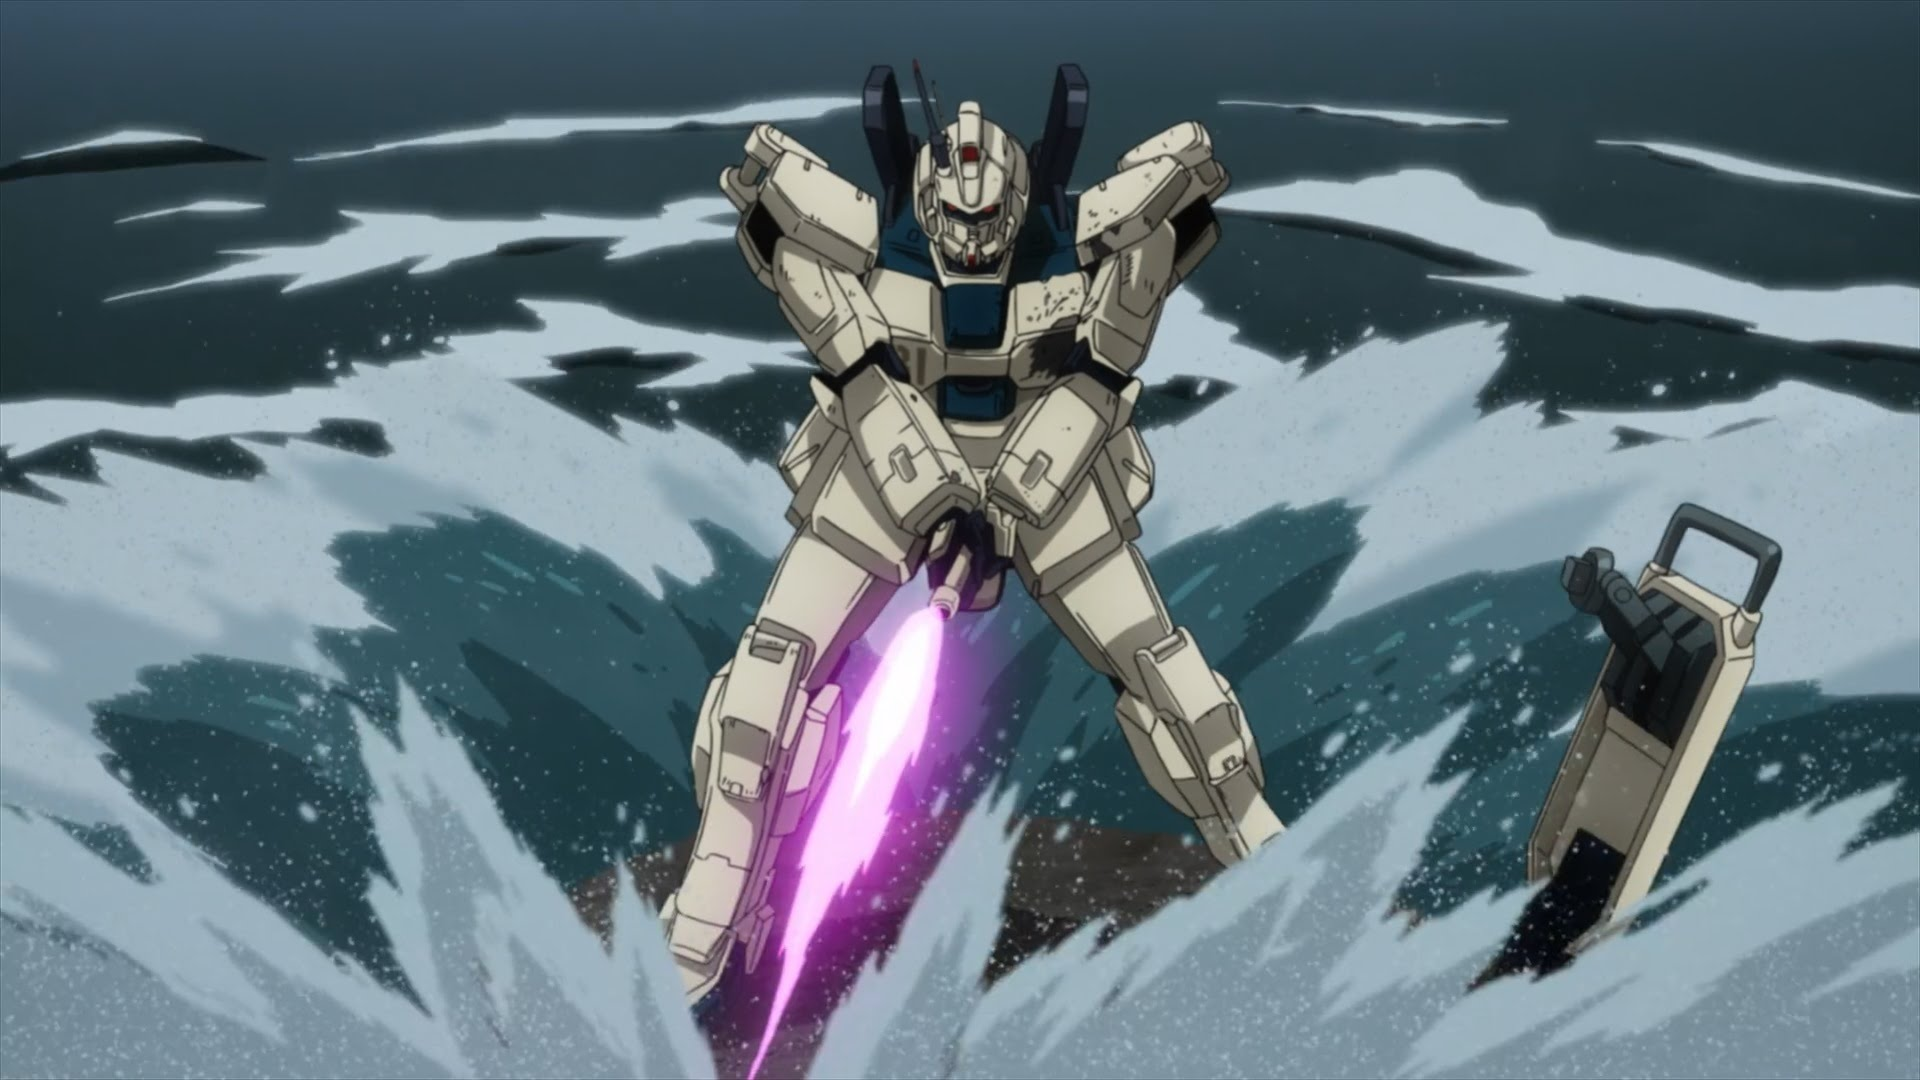 Mobile Suit Gundam: The 08th MS Team, The 08th MS Team, Mobile Suit Gundam, Anime, Manga, Anime Streaming Showcase, Streaming, Hulu, Gundam, Youtube,